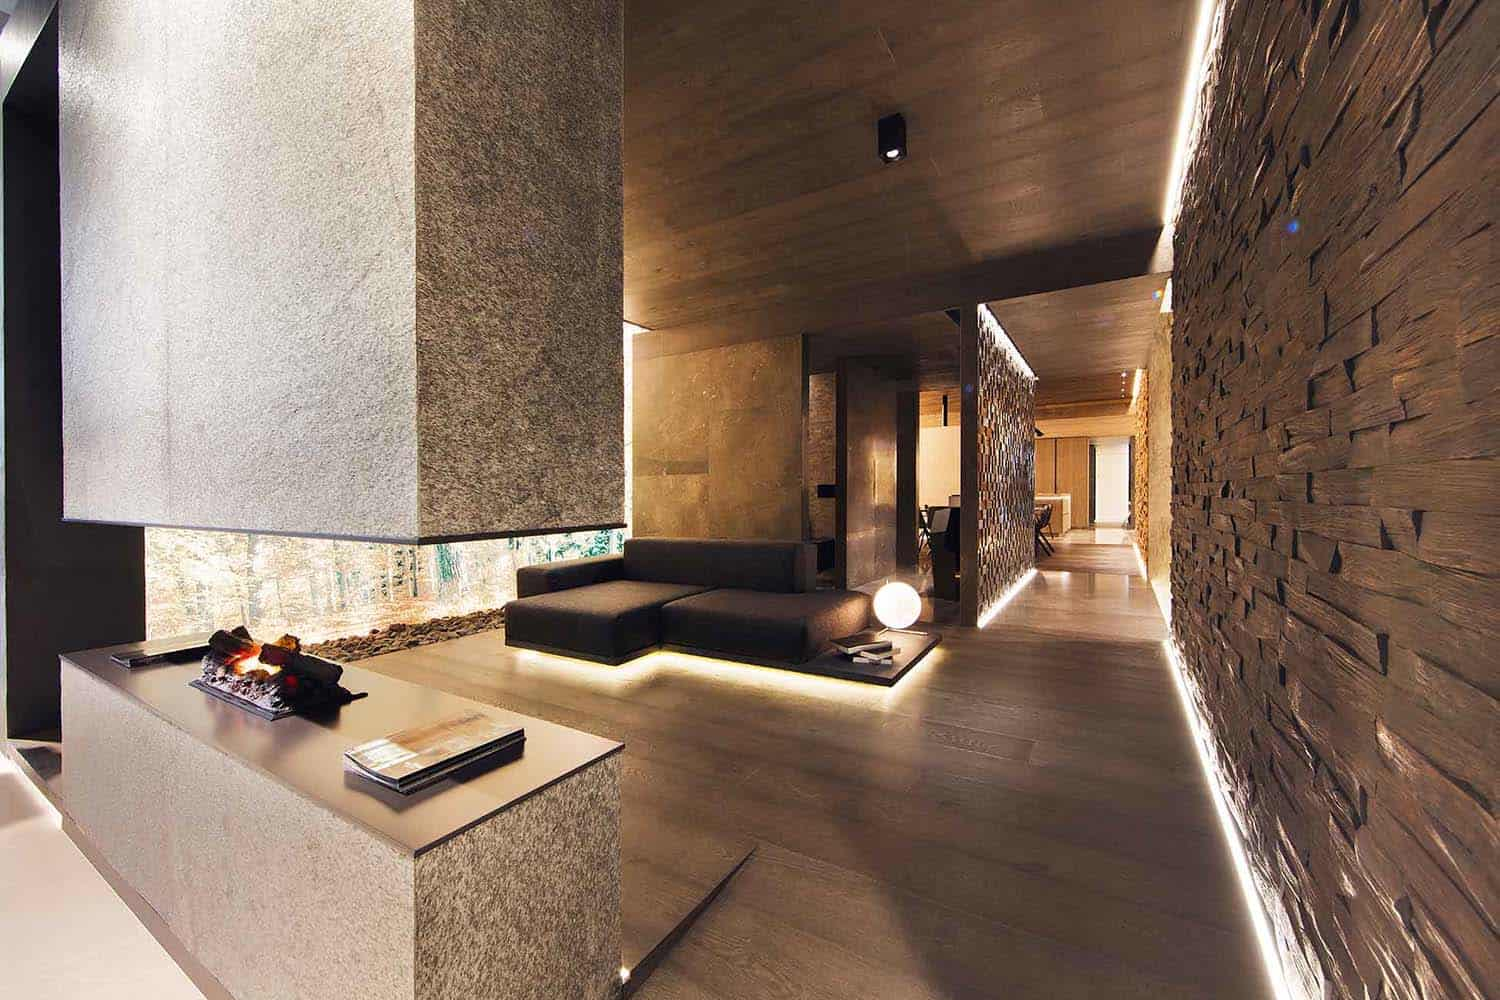 Luxurious display of materials showcased by Ramon Esteve in Spain